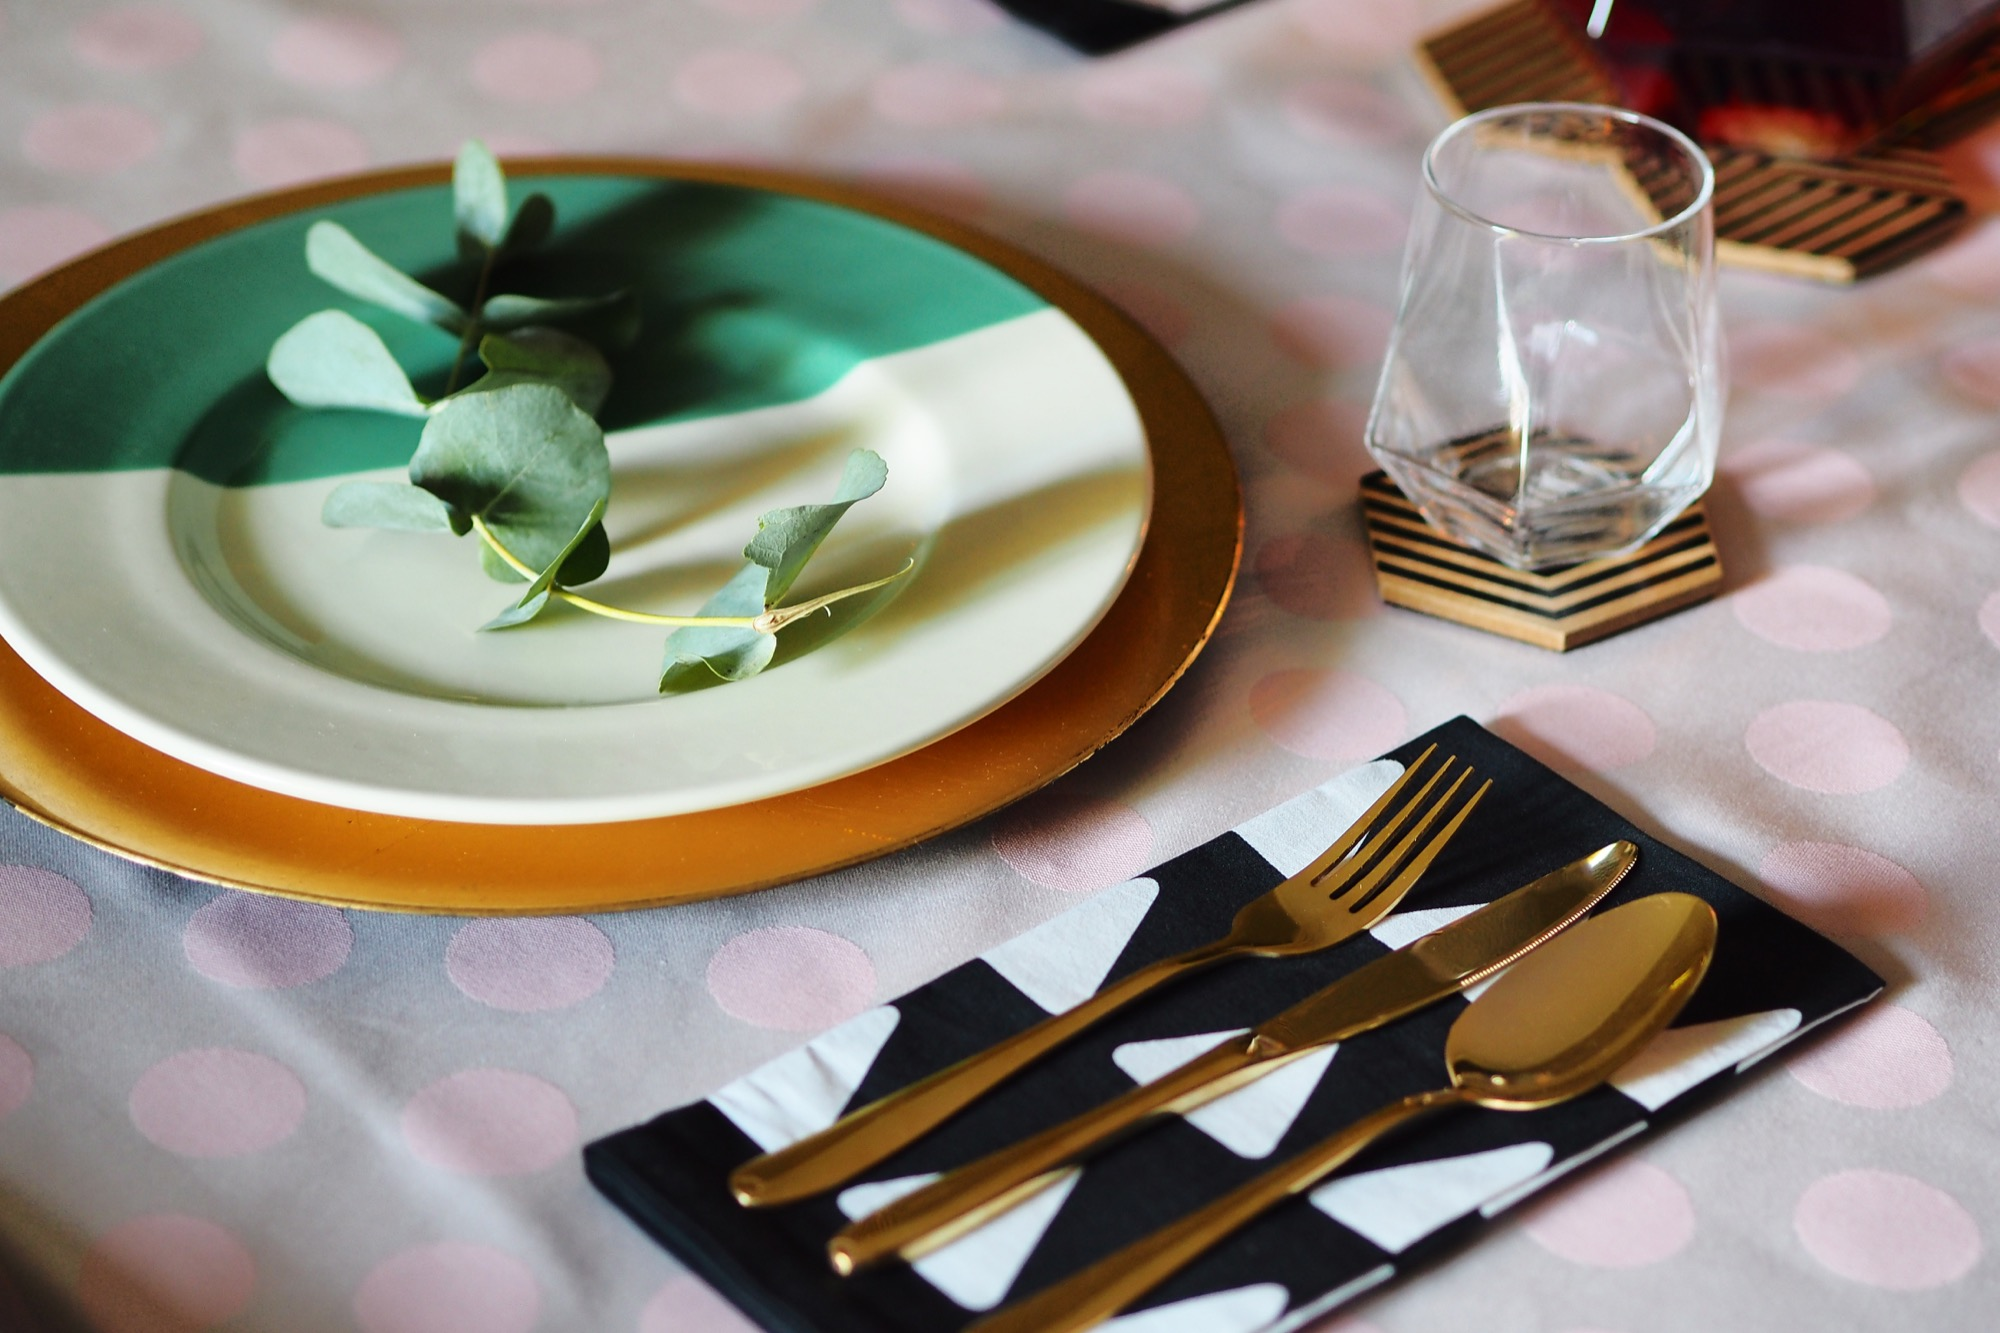 Here are some ideas for decorating and styling a winter dinner party without it being all reindeers and fake snow. Keeping it classy!